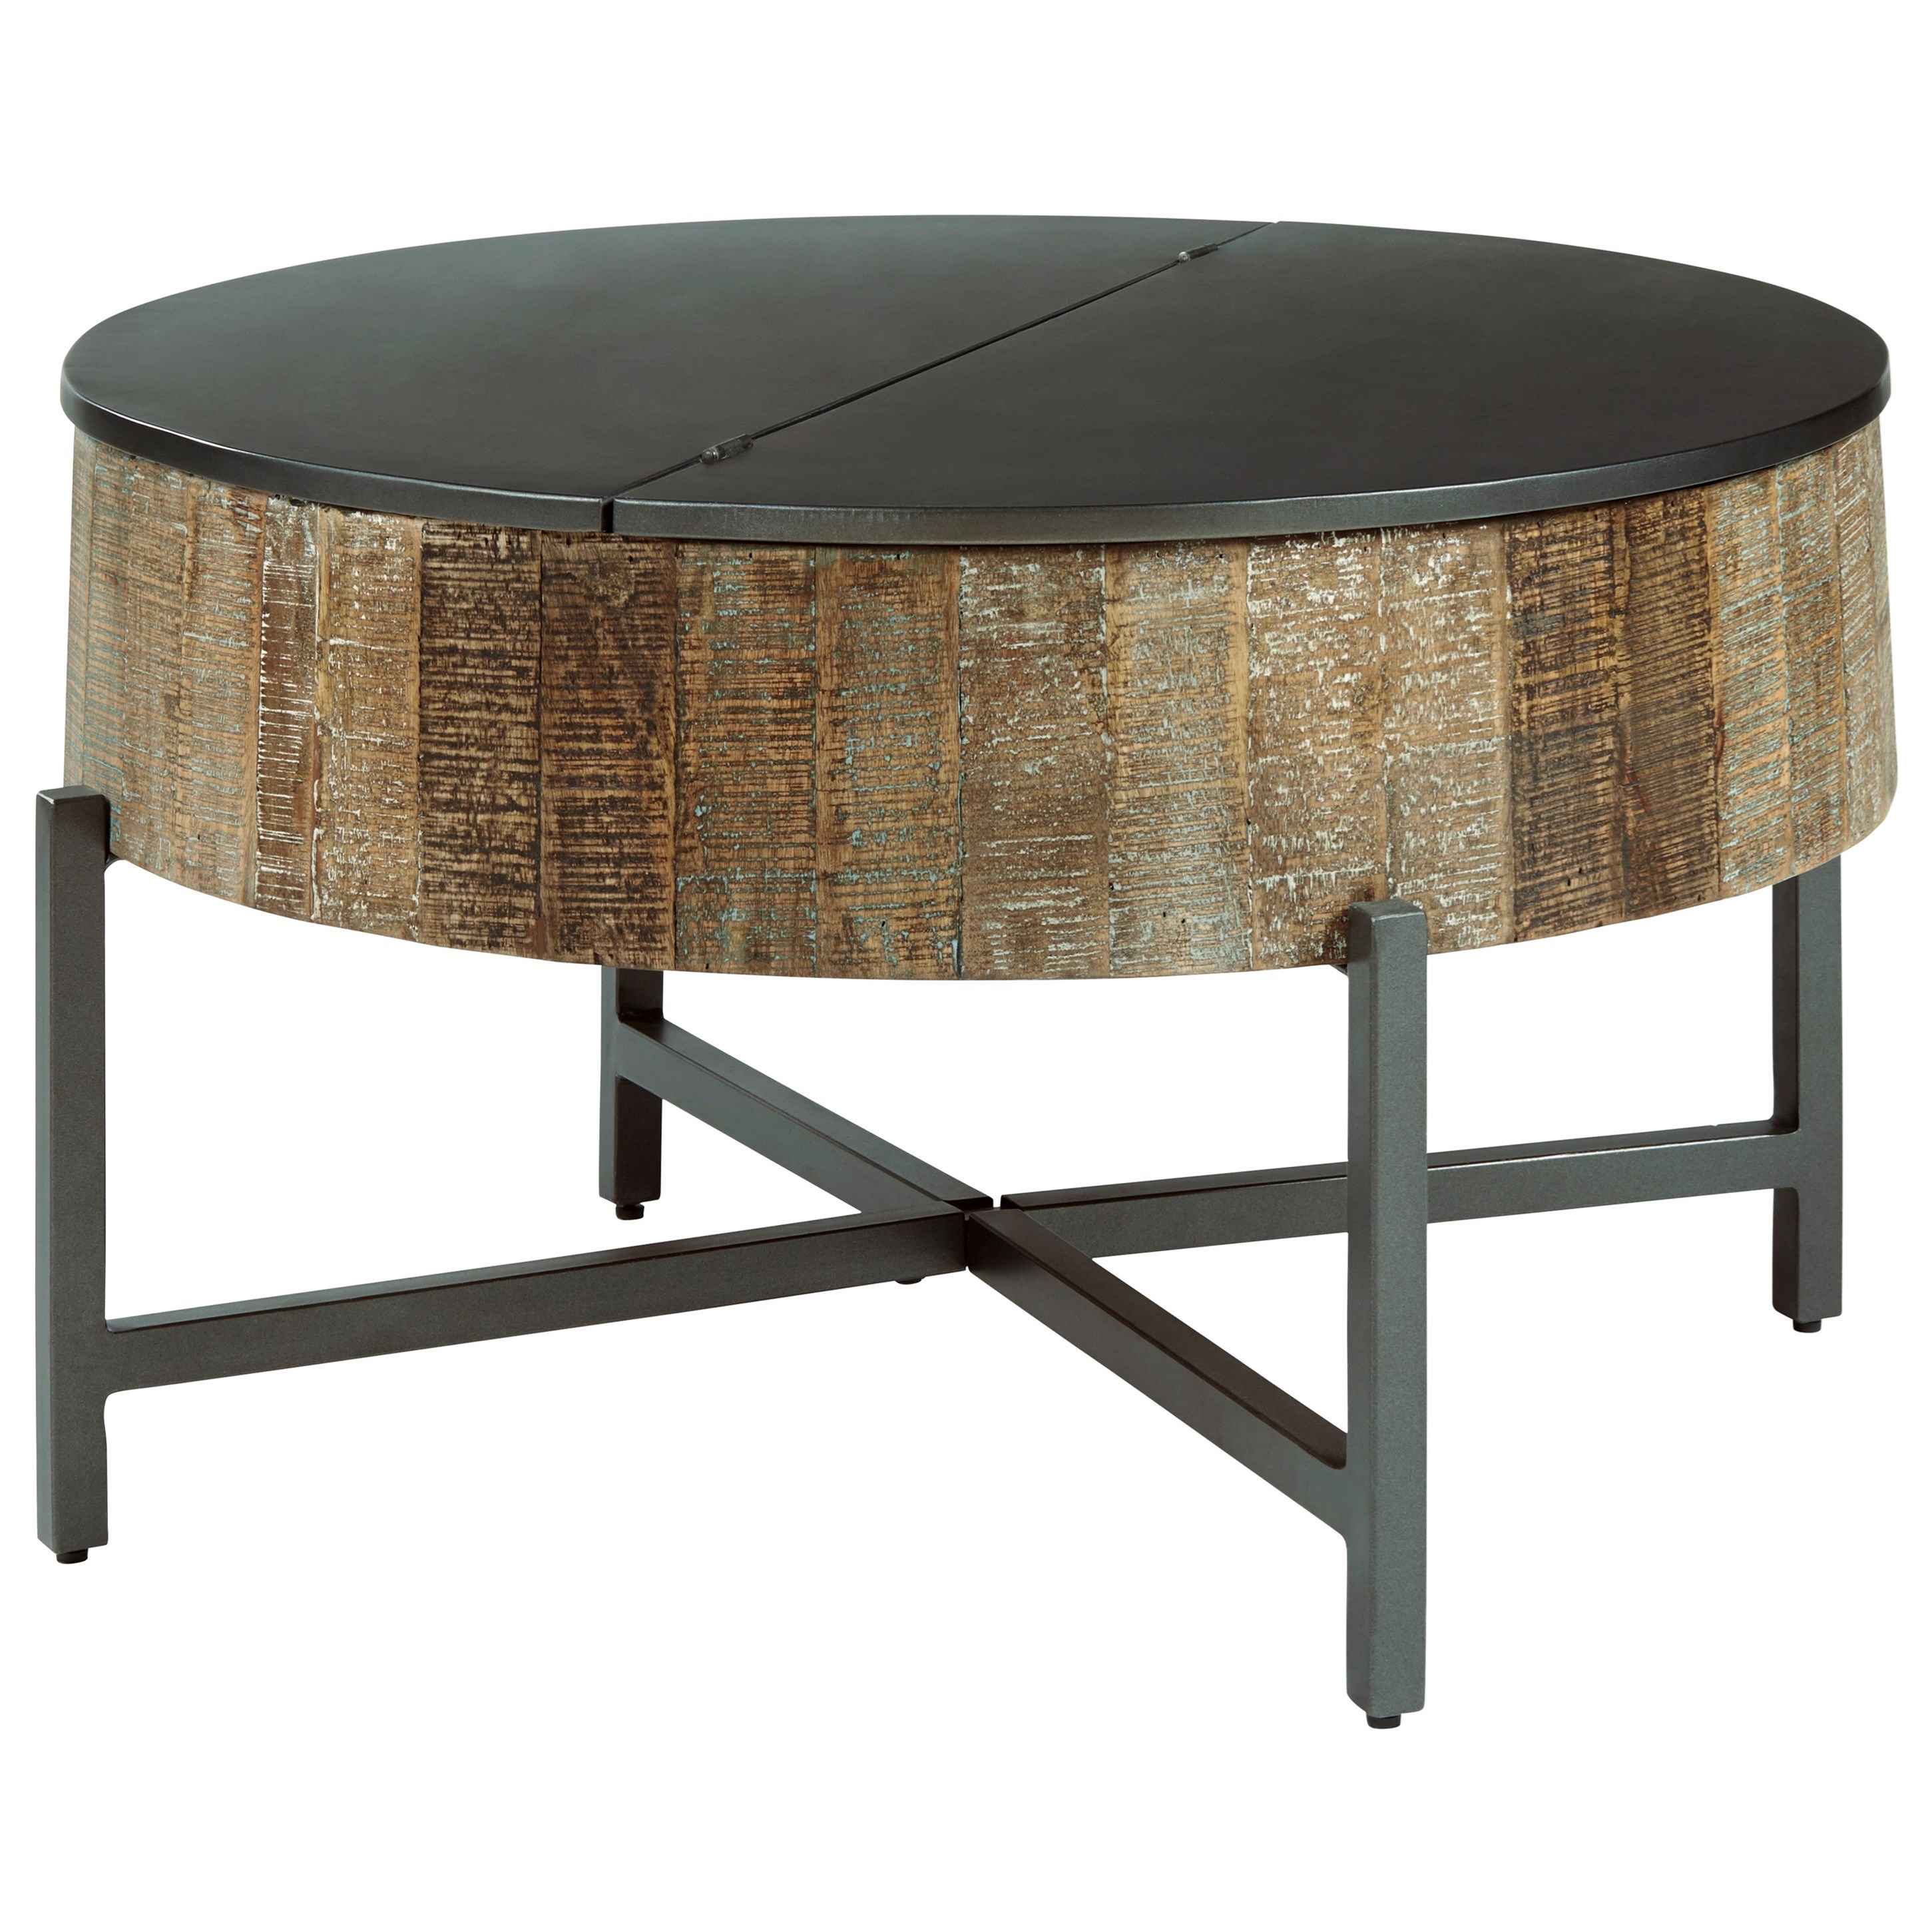 Nashbryn Round Cocktail Table by Signature Design by Ashley at Beck's Furniture